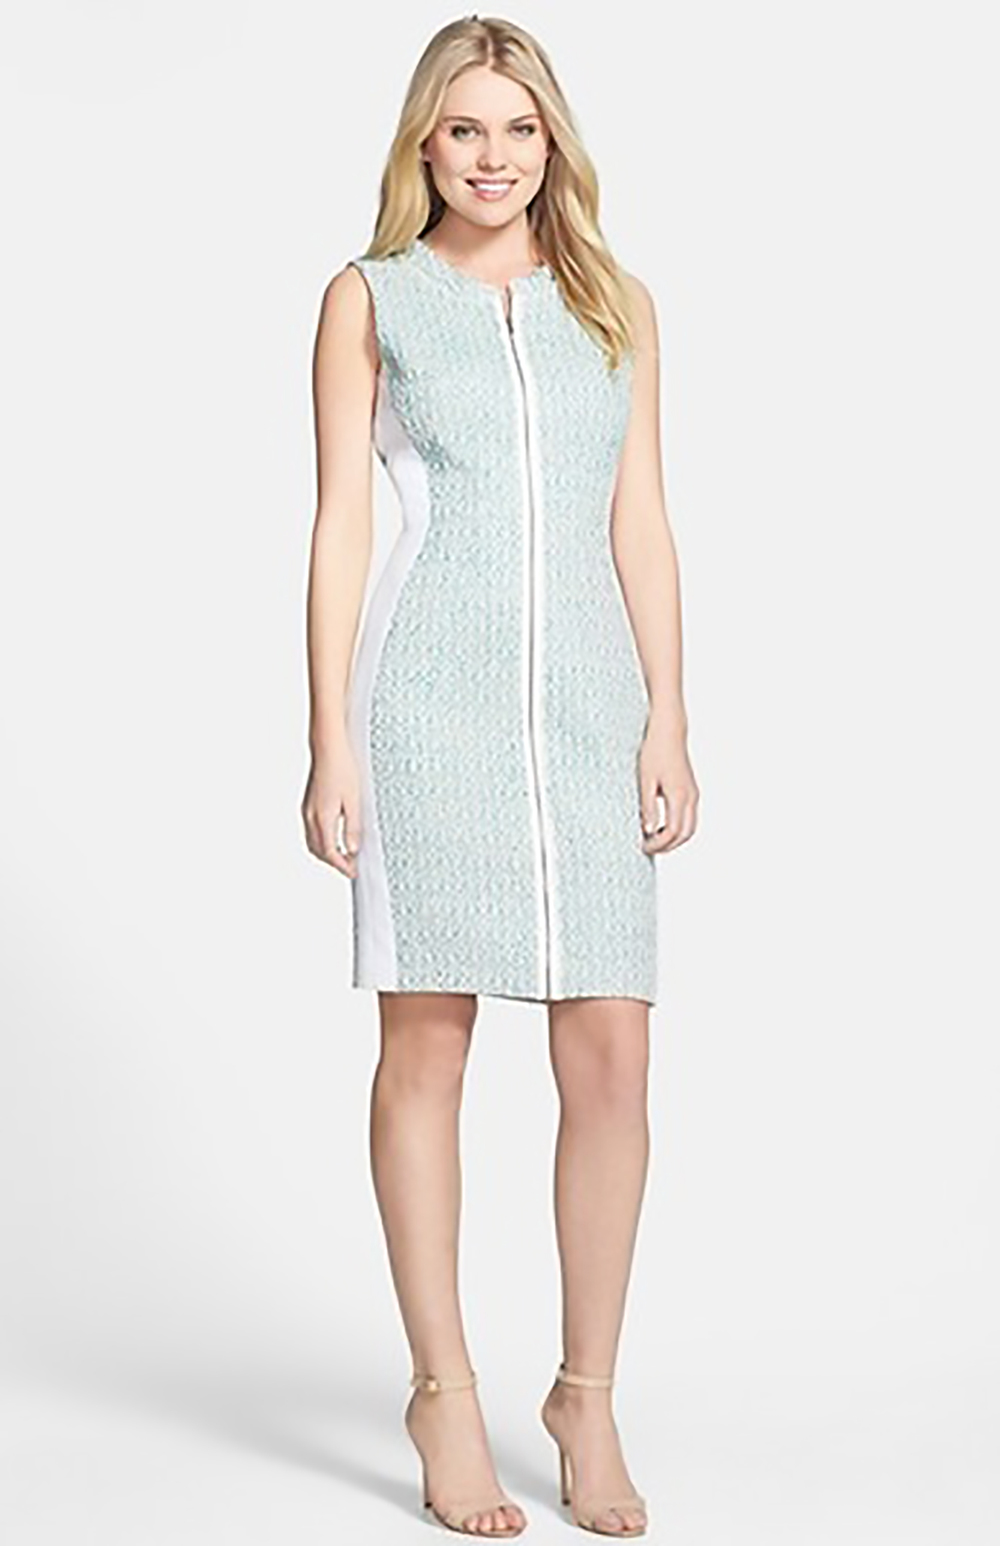 nordstrom T Tahari Avani dress sheath dress 1500.jpg